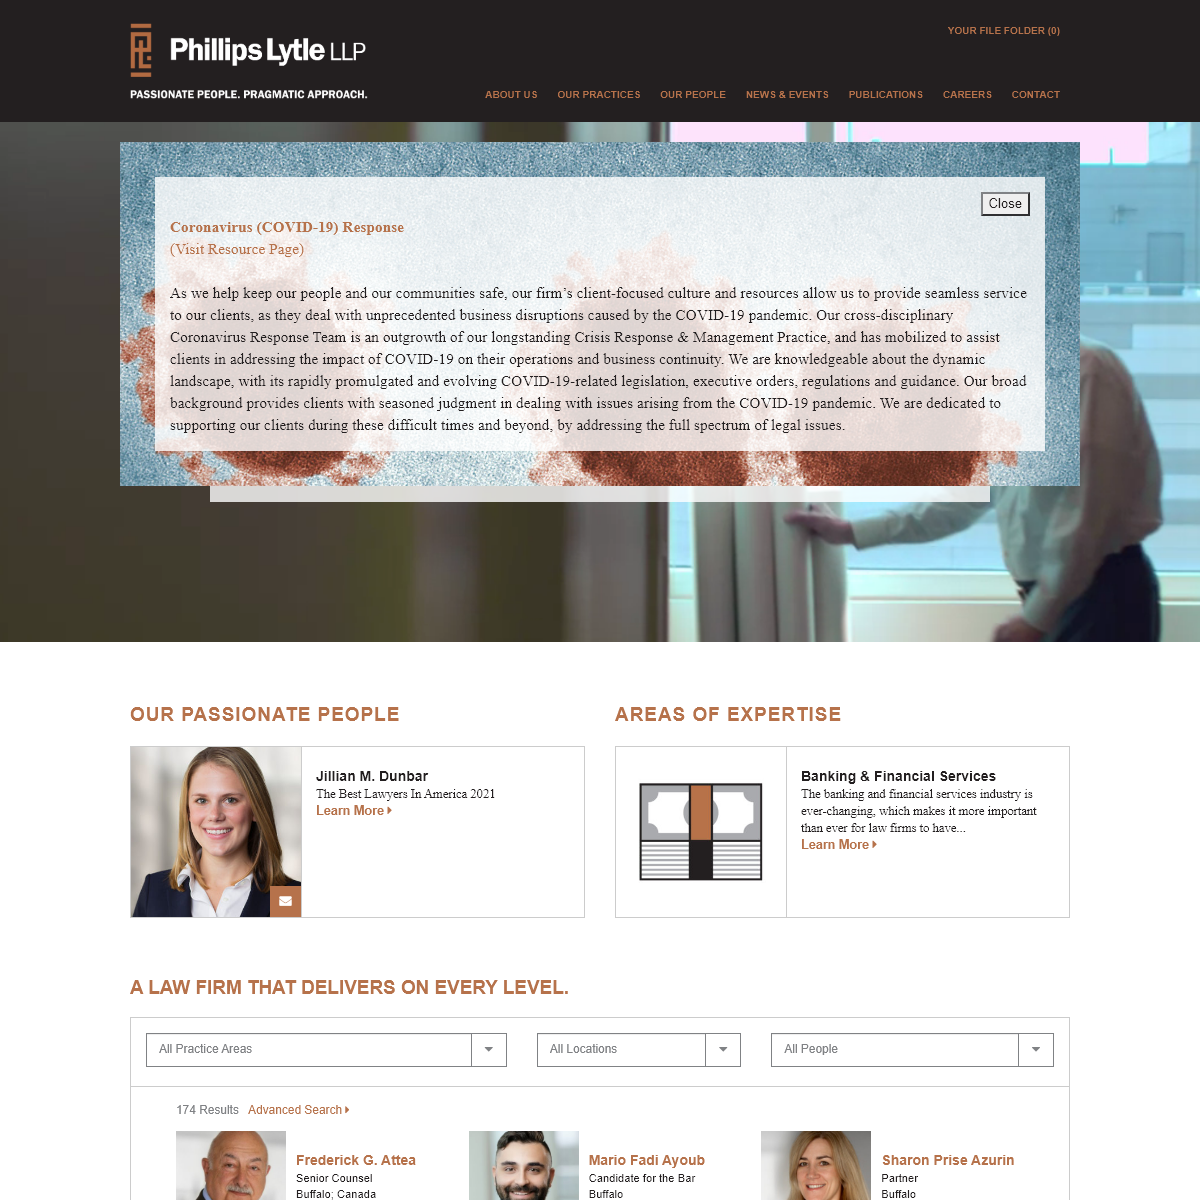 Full Service Law Firm in US & Canada - Phillips Lytle LLP